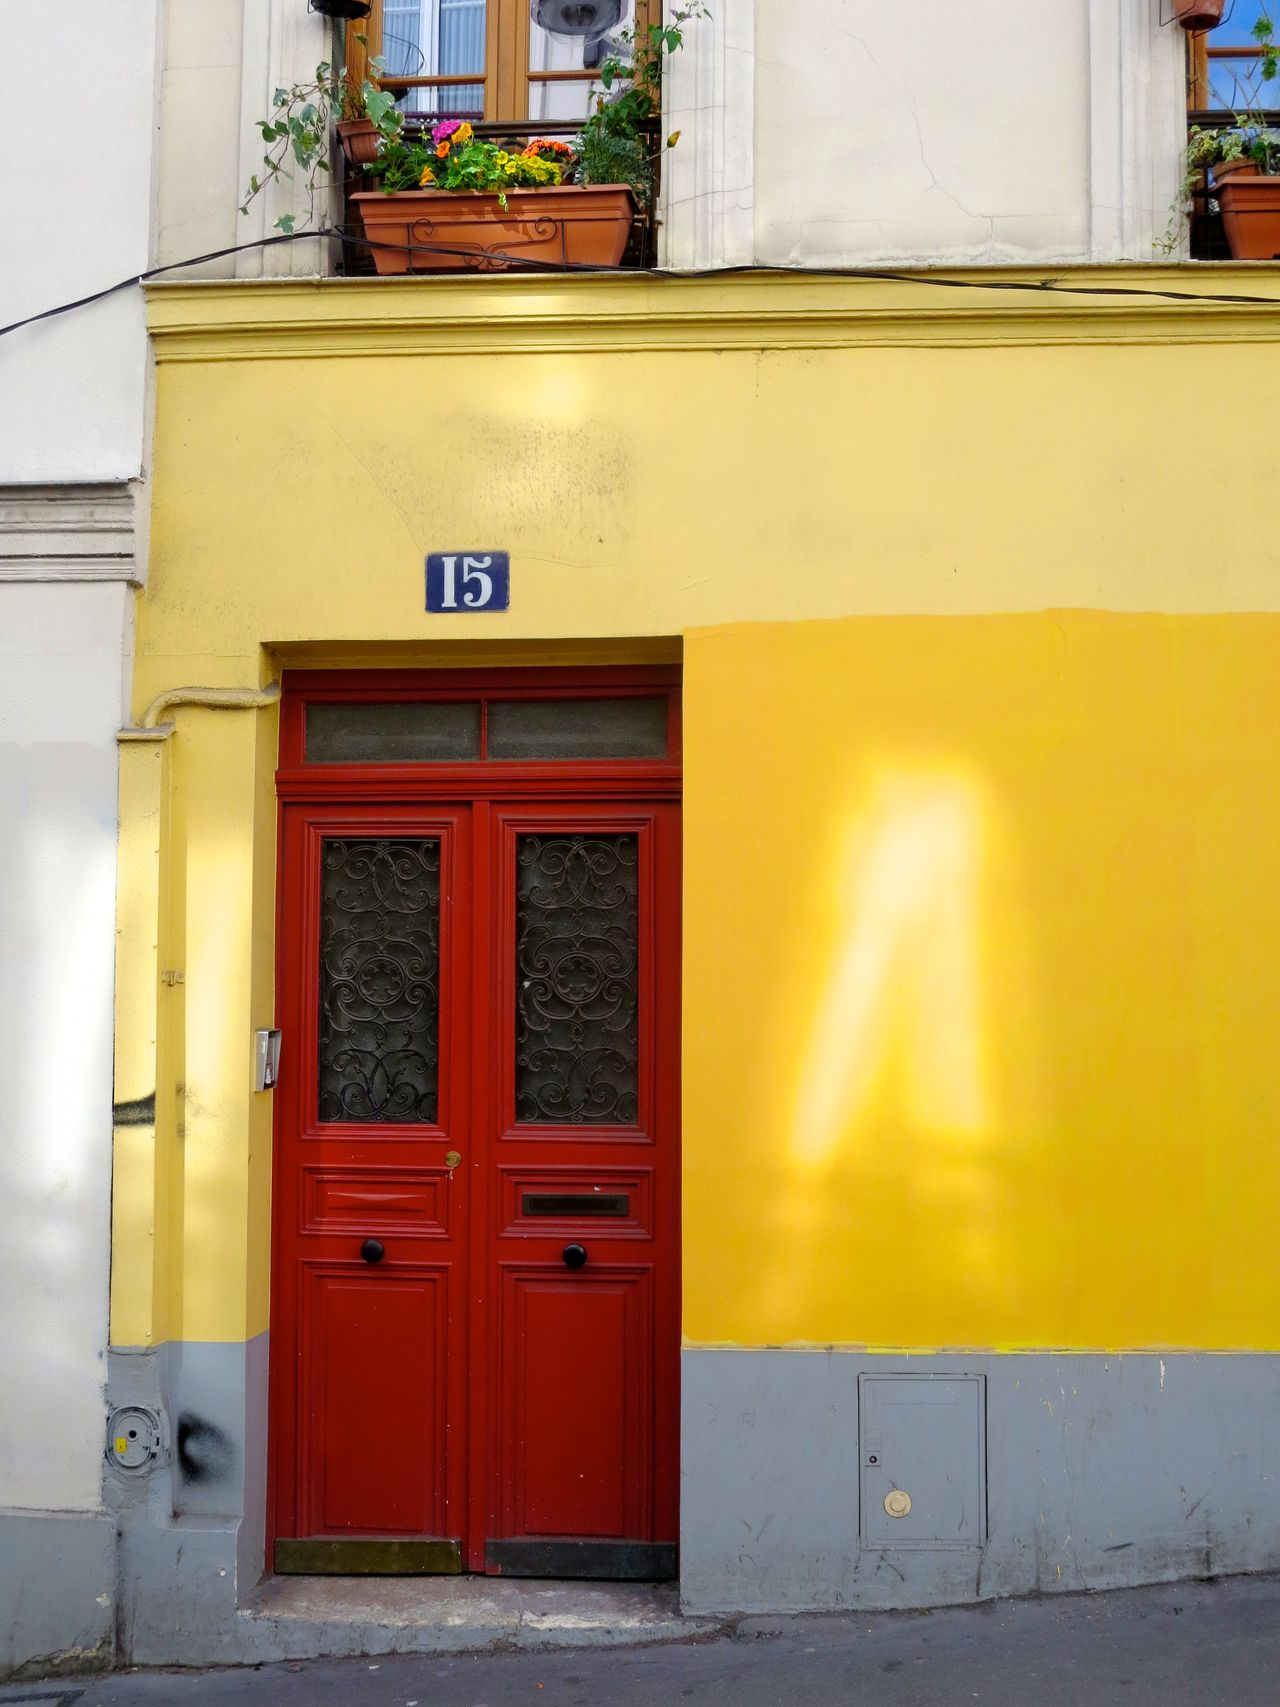 Architectural Feature Architecture Building Exterior City Door Entrance Red Door Slanted Yellow